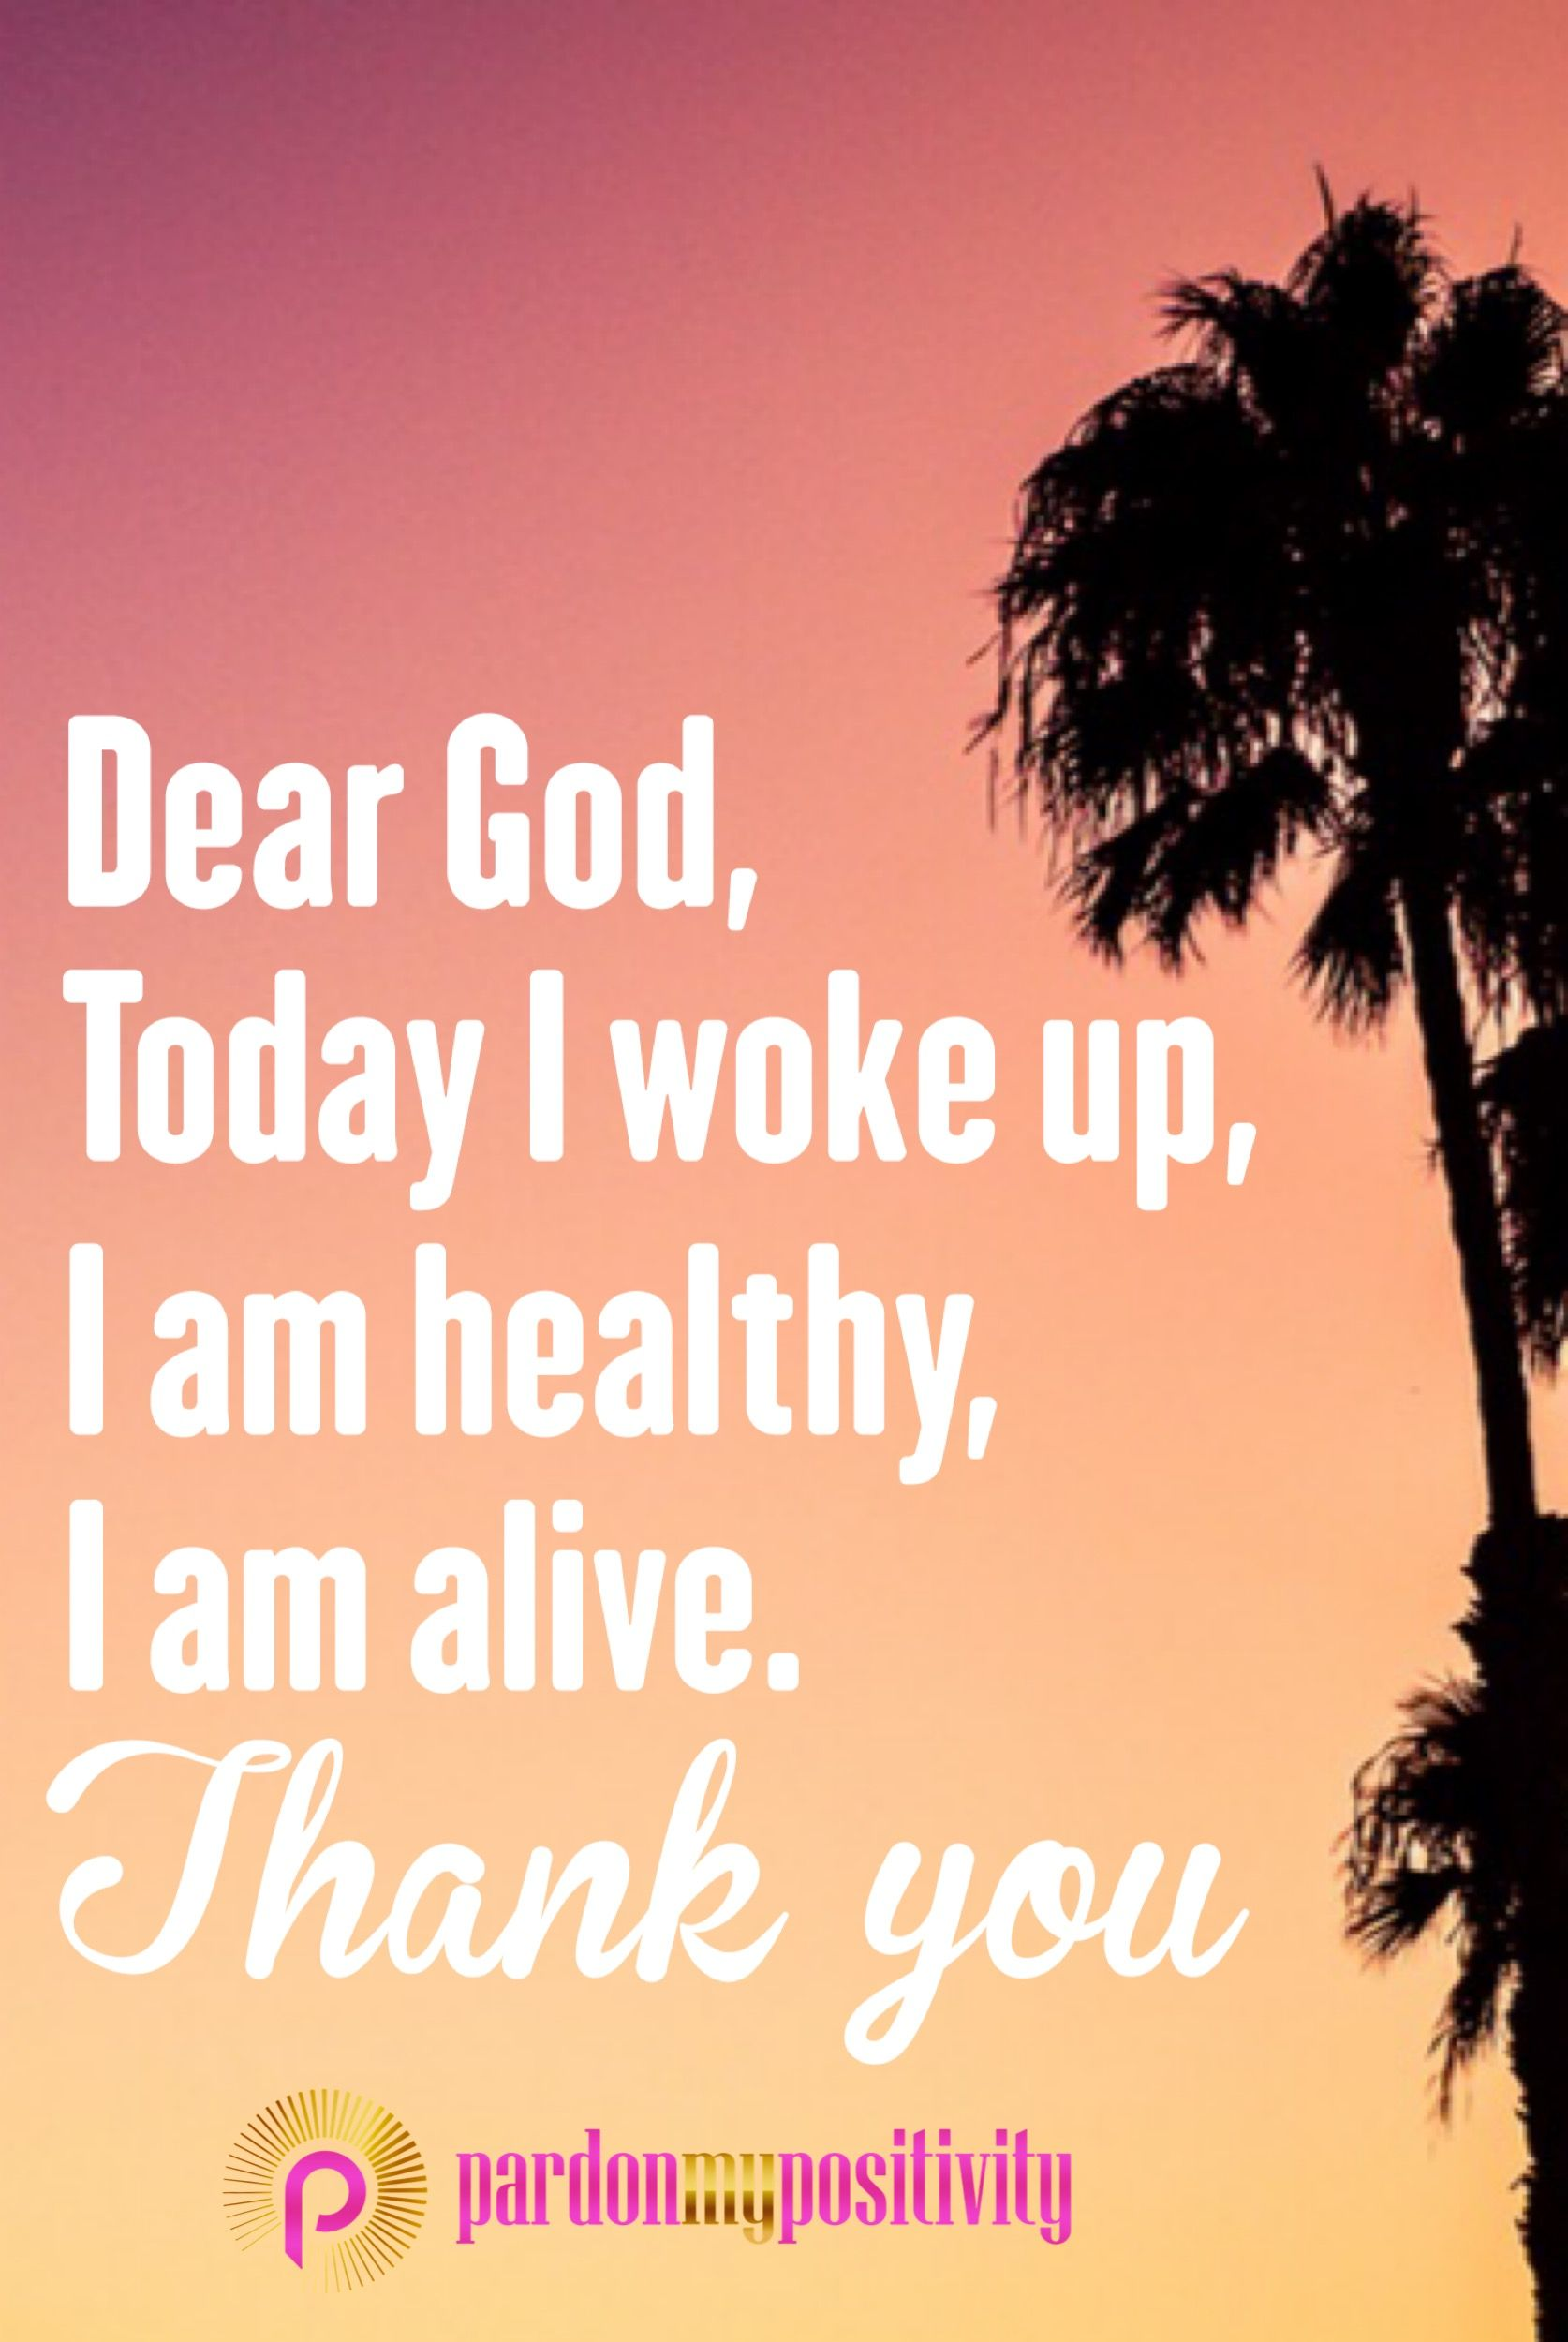 Dear God, today I woke up, I am healthy, I am alive, THANK YOU